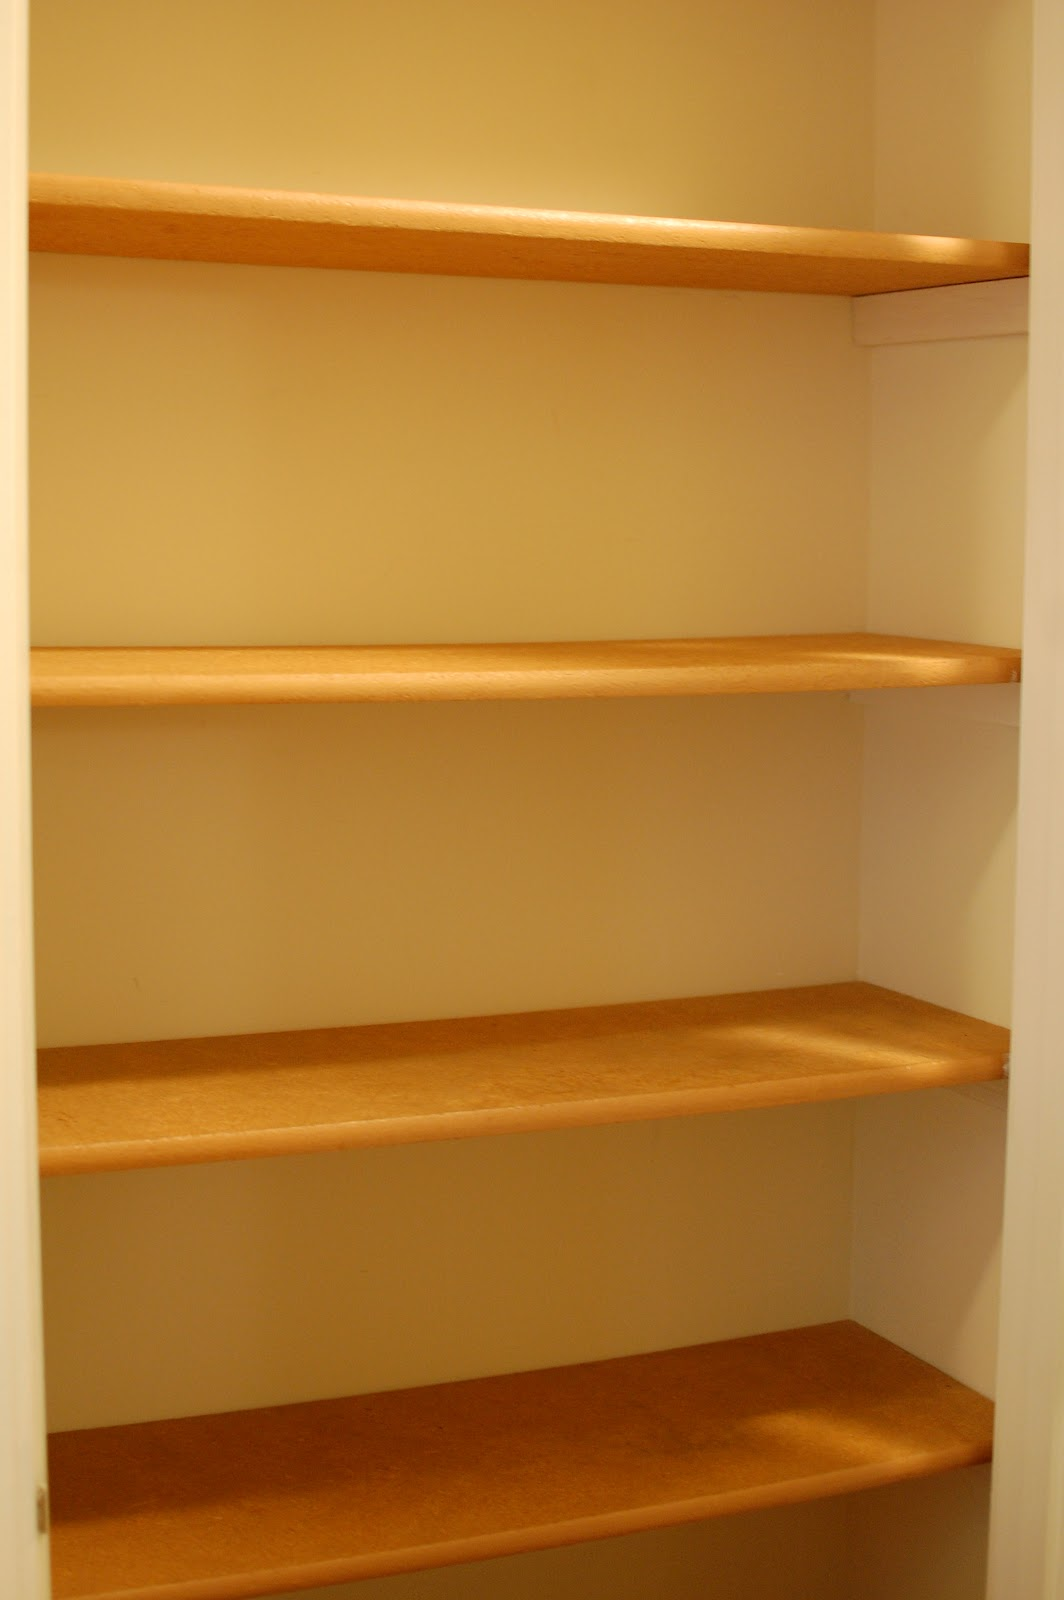 How to build linen closet shelves this hack will keep your linen closet organized for trim